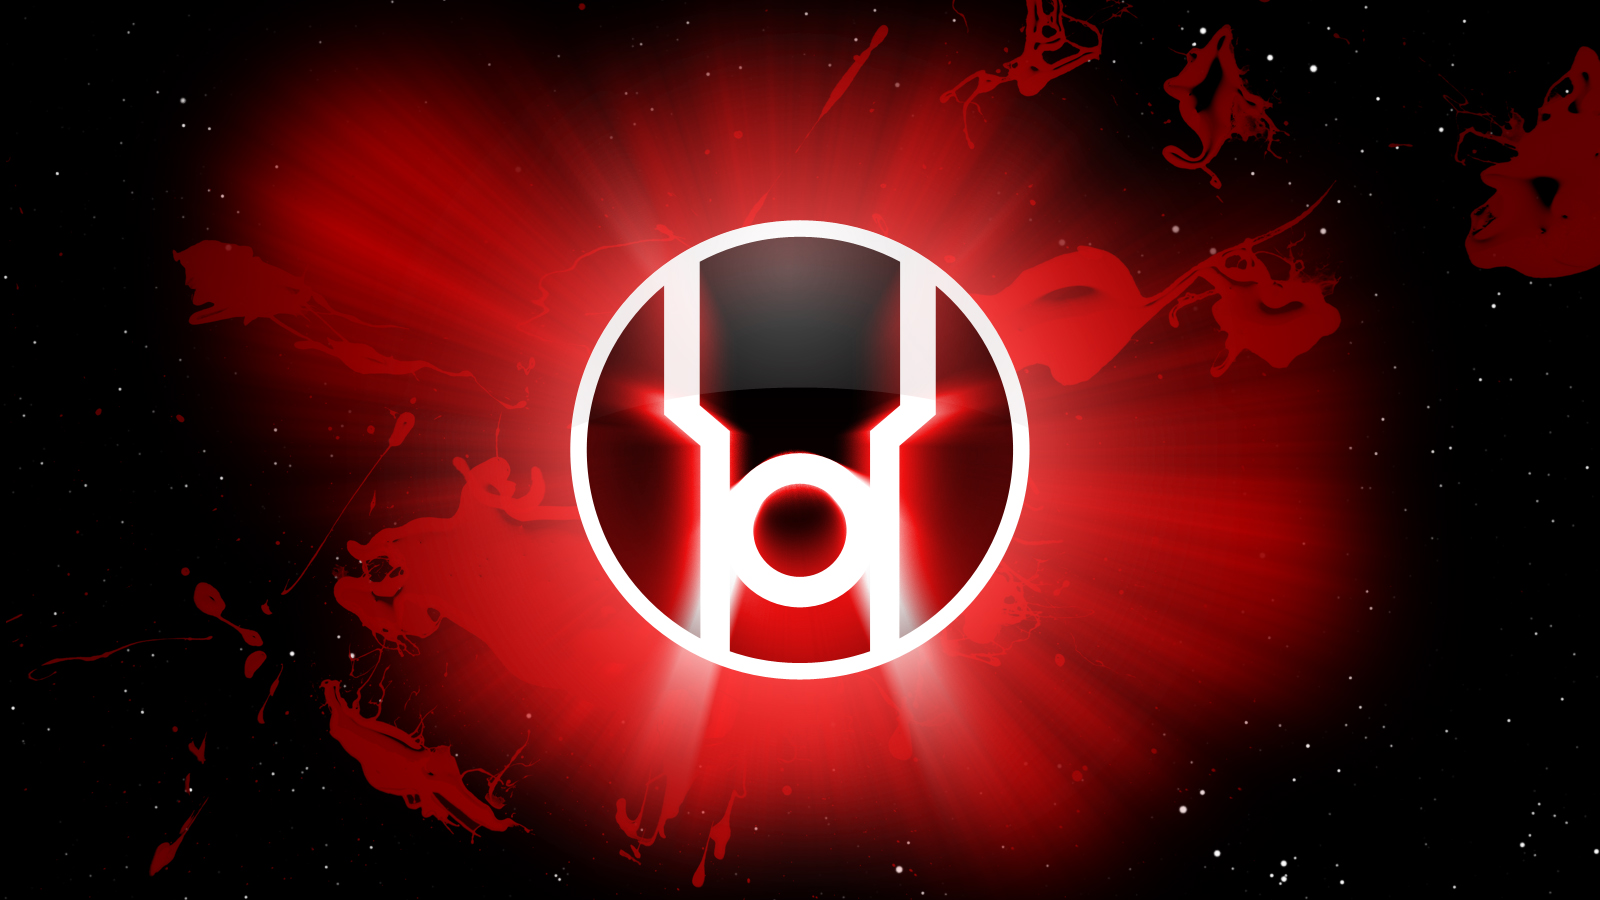 Red lantern corps symbol wallpaper - photo#2